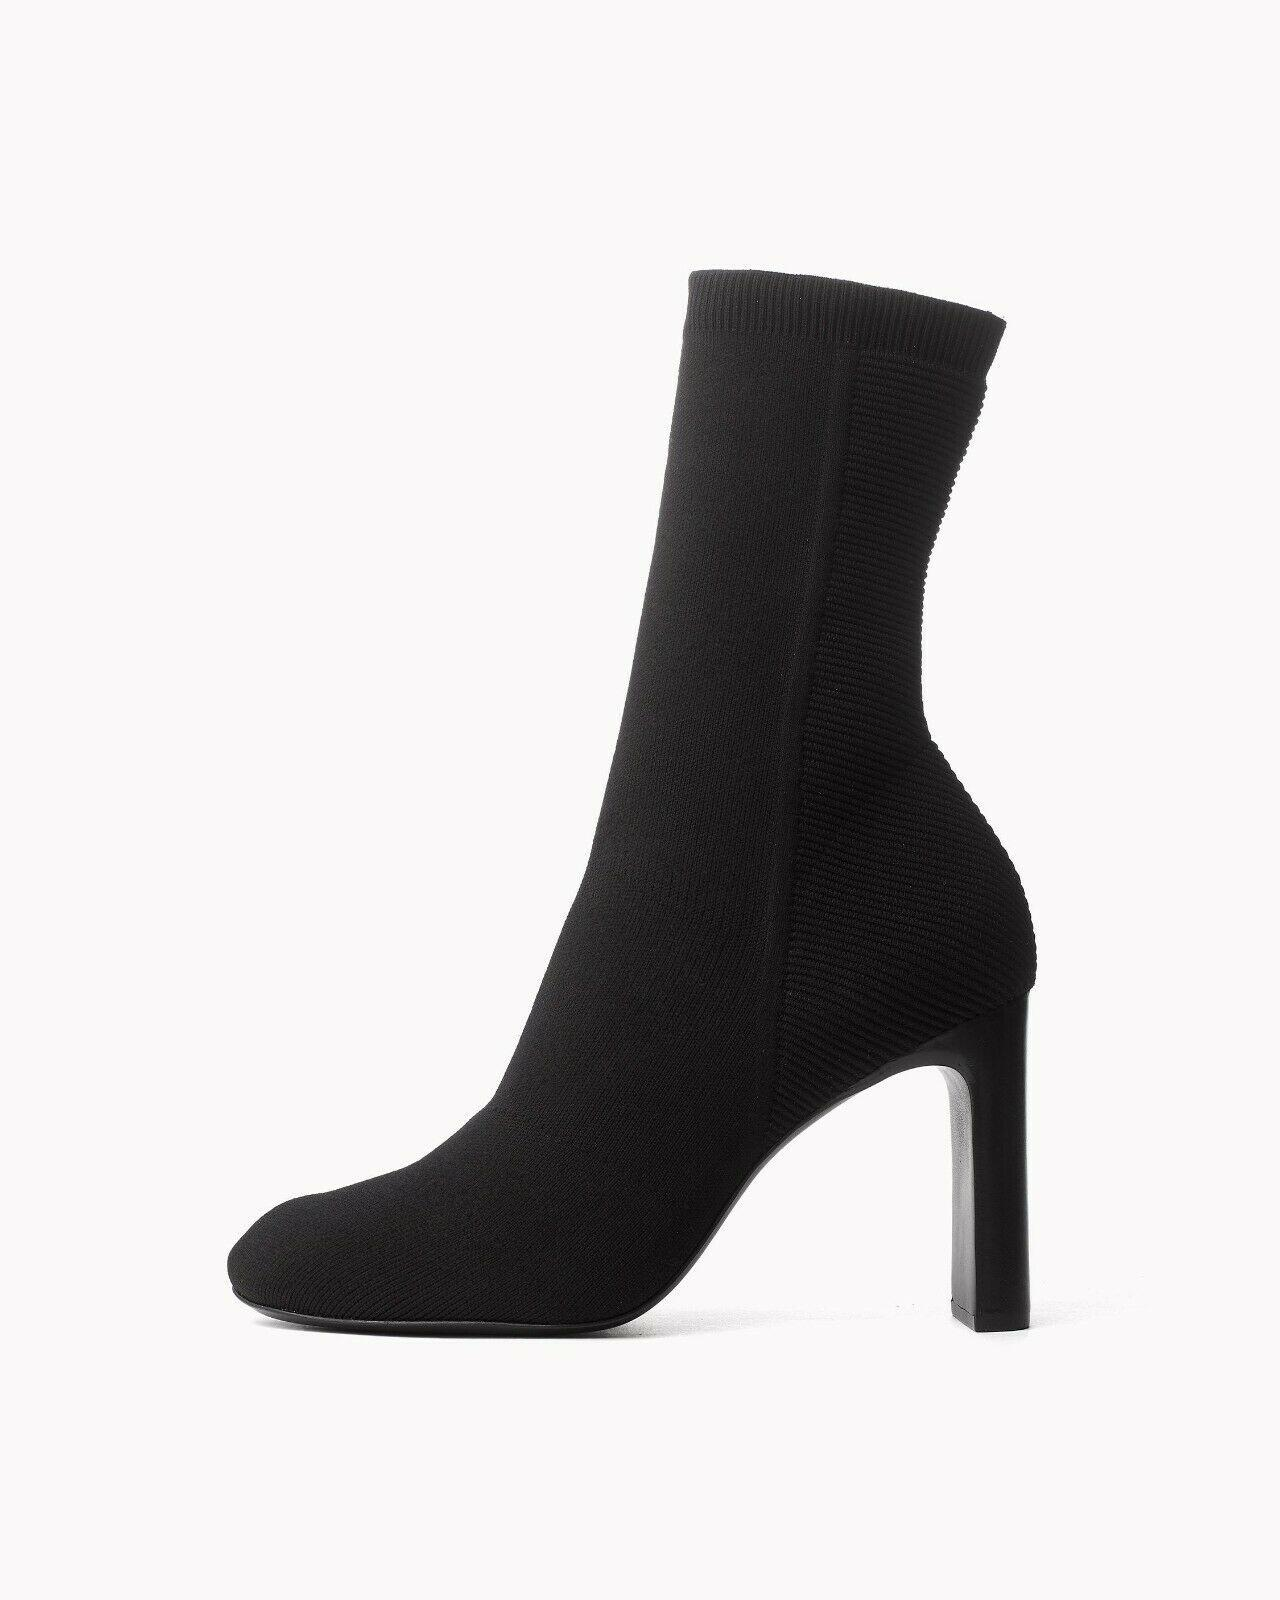 $575 Rag & Bone ELLIS Black Stretch Ellis Knit Boots Ankle Booties 38.5